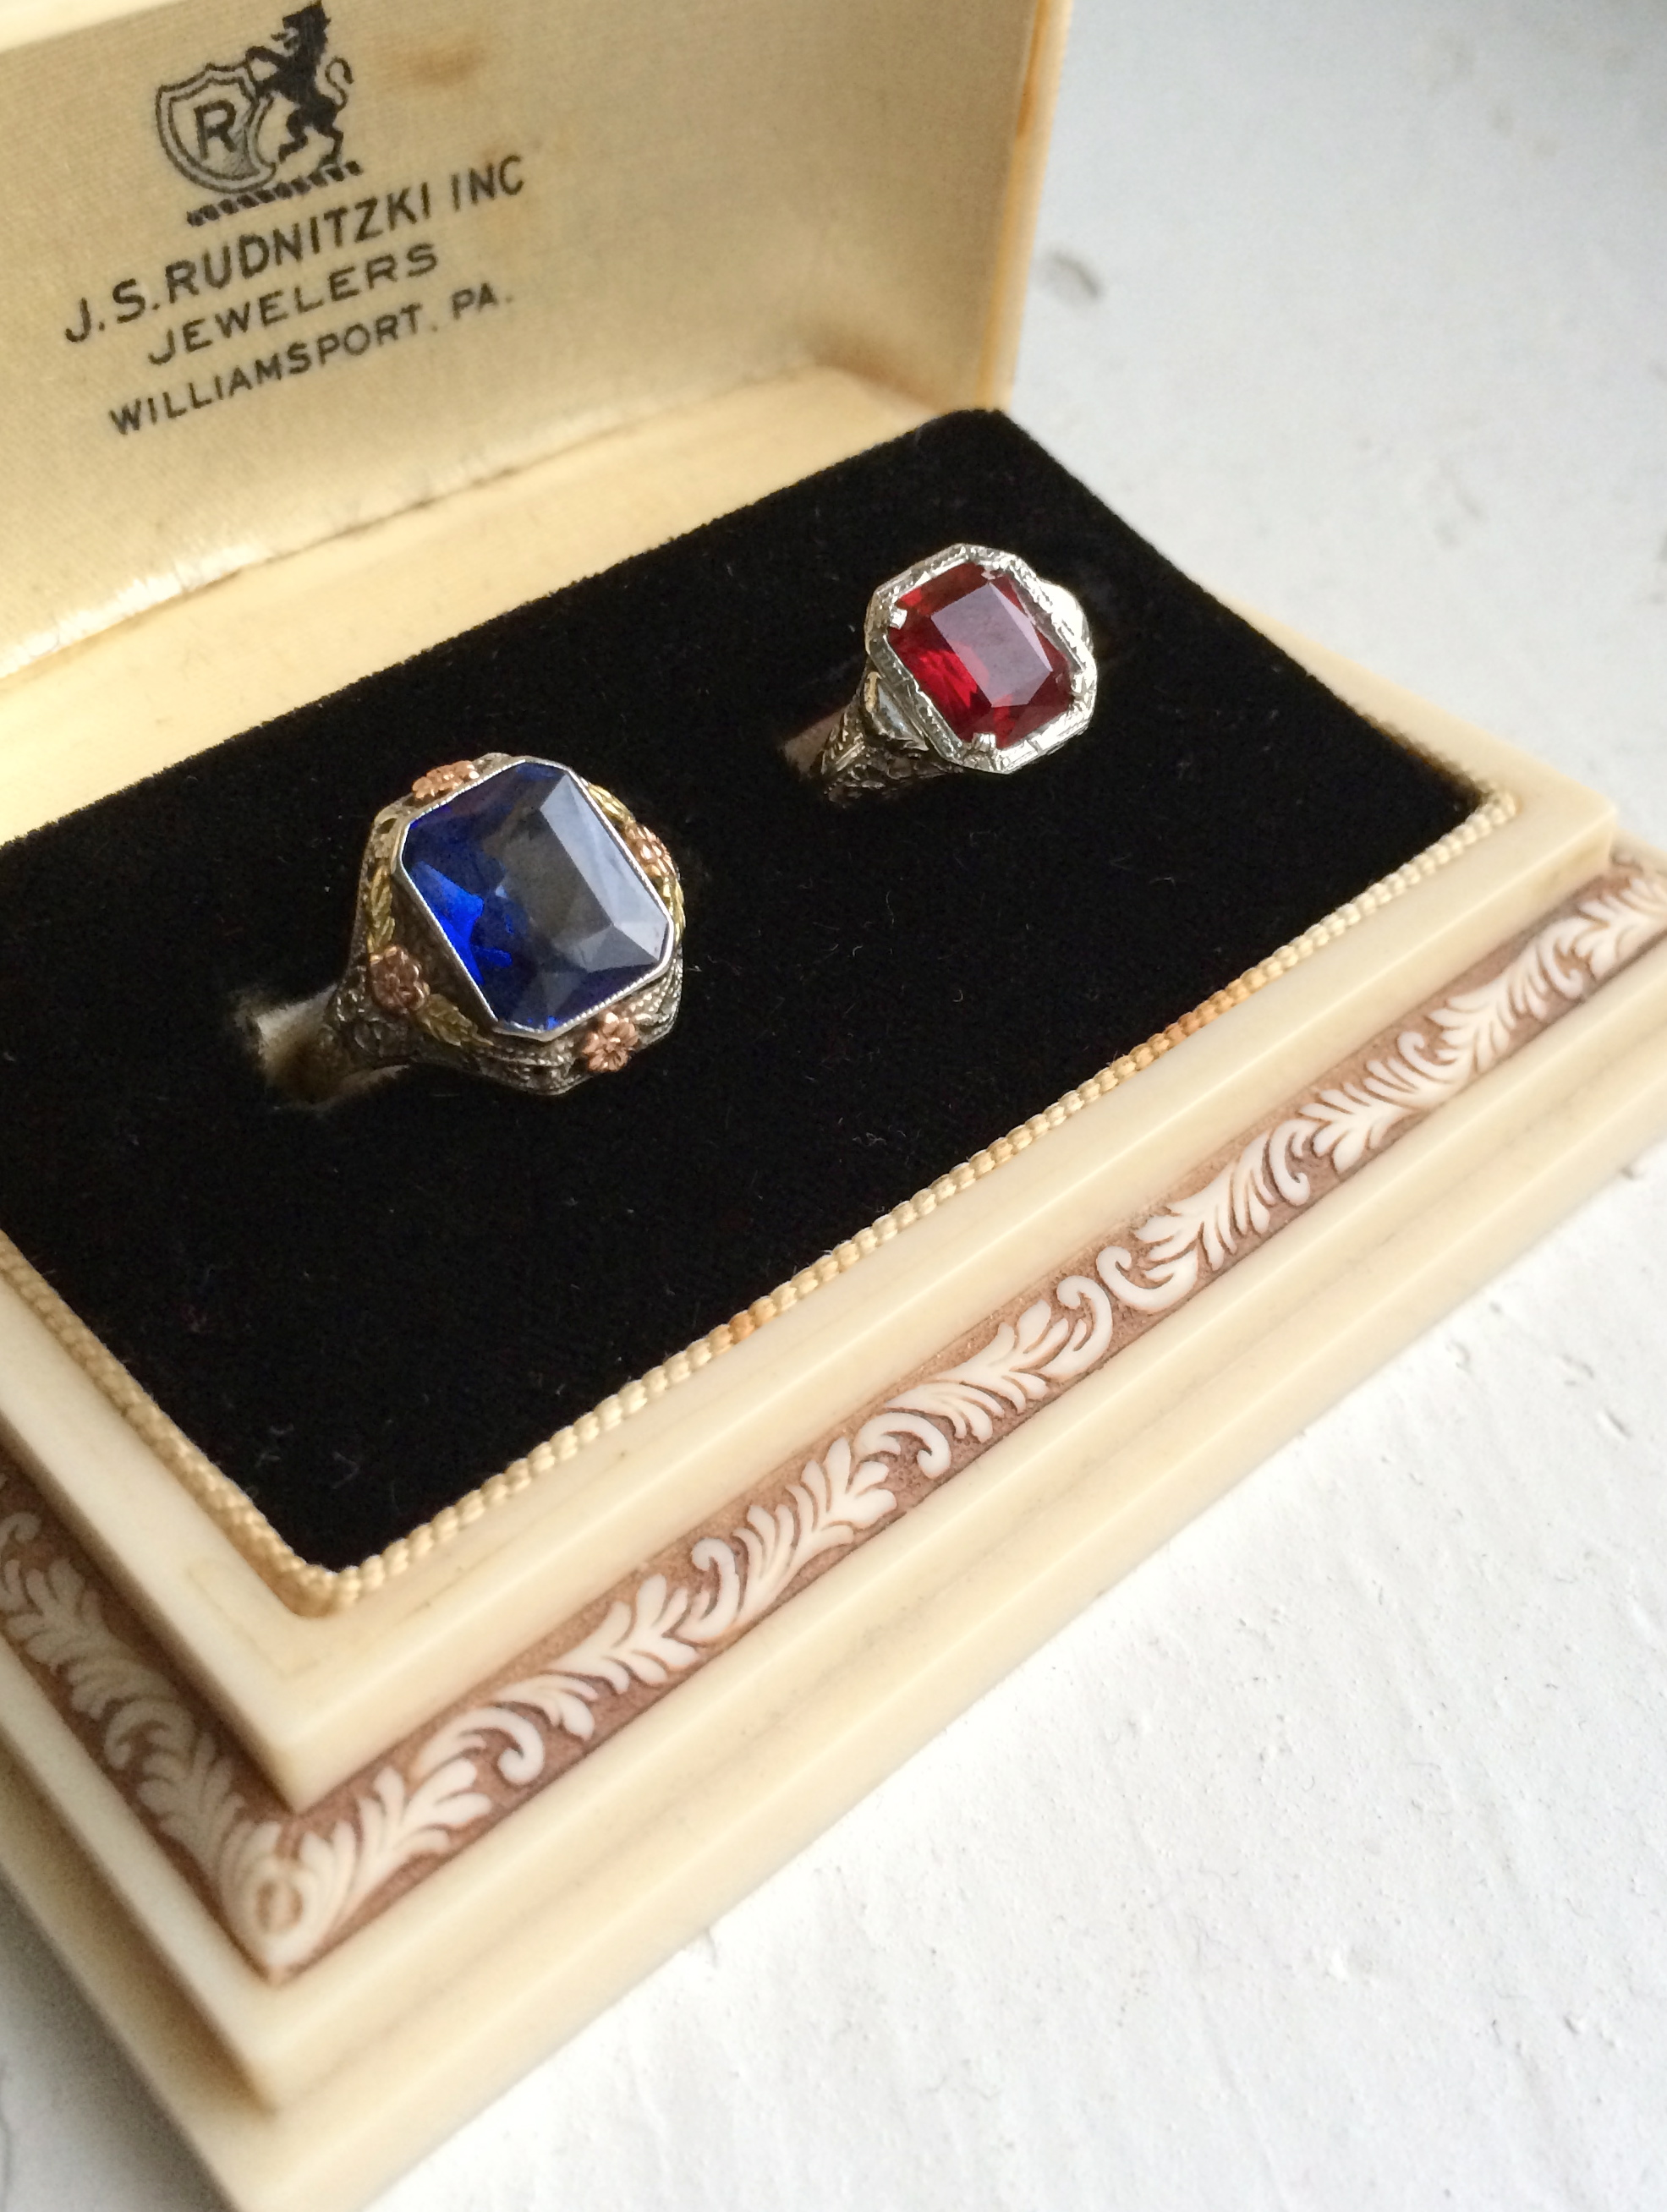 (Left) The first filigree ring in my personal collection with my favorite gemstone, a sapphire!  (Right) The special filigree setting my significant other purchased for me. We found a perfect ruby for it!